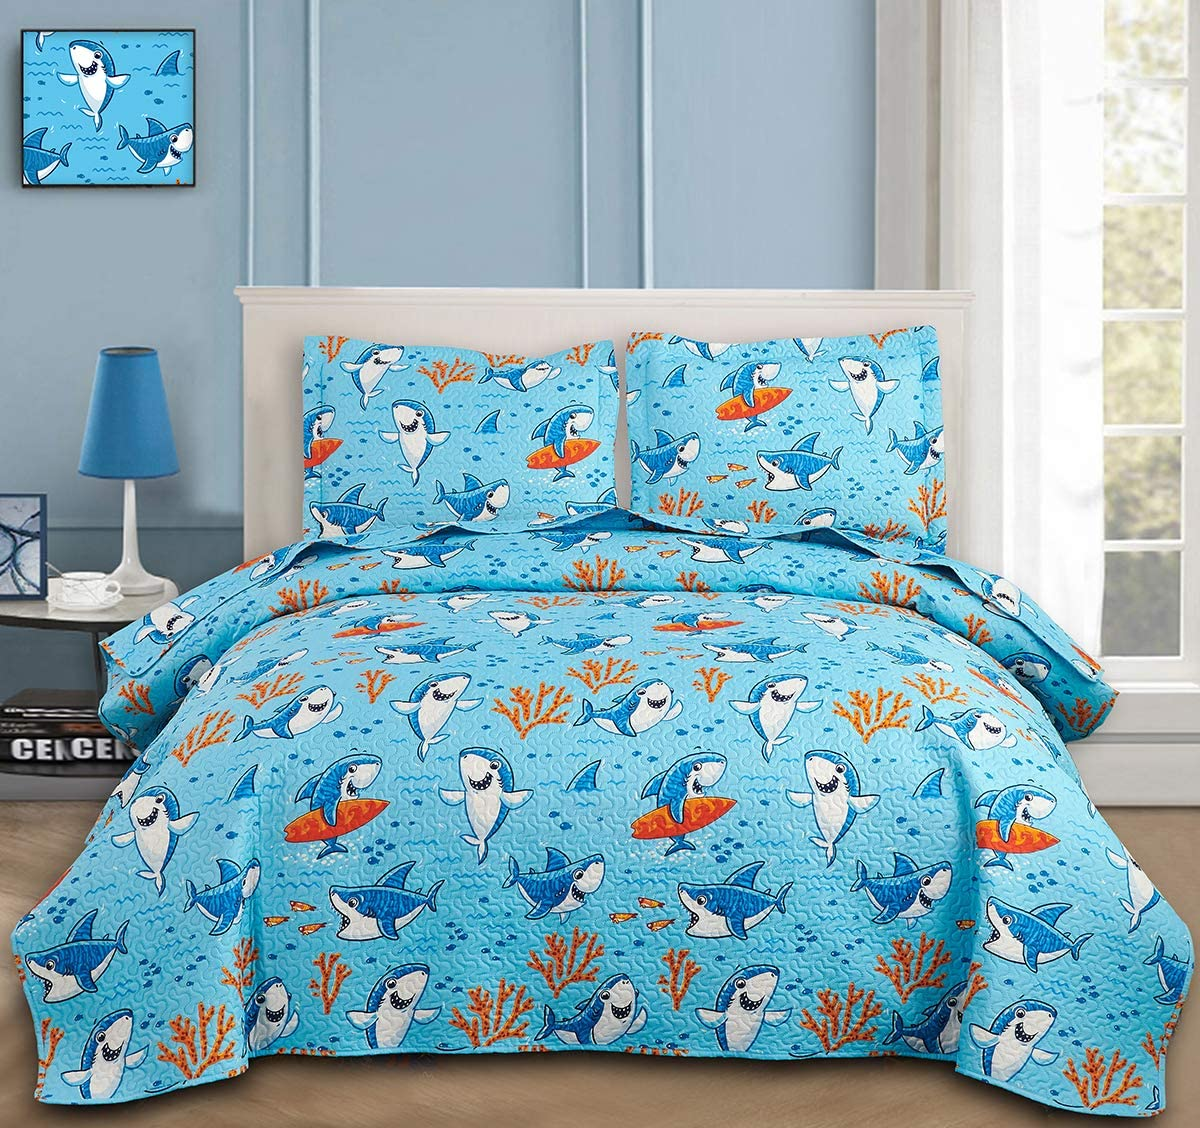 Kids Bedspread Set Twin Max 61% OFF Size Shark Bedding Boys Quilts Great interest